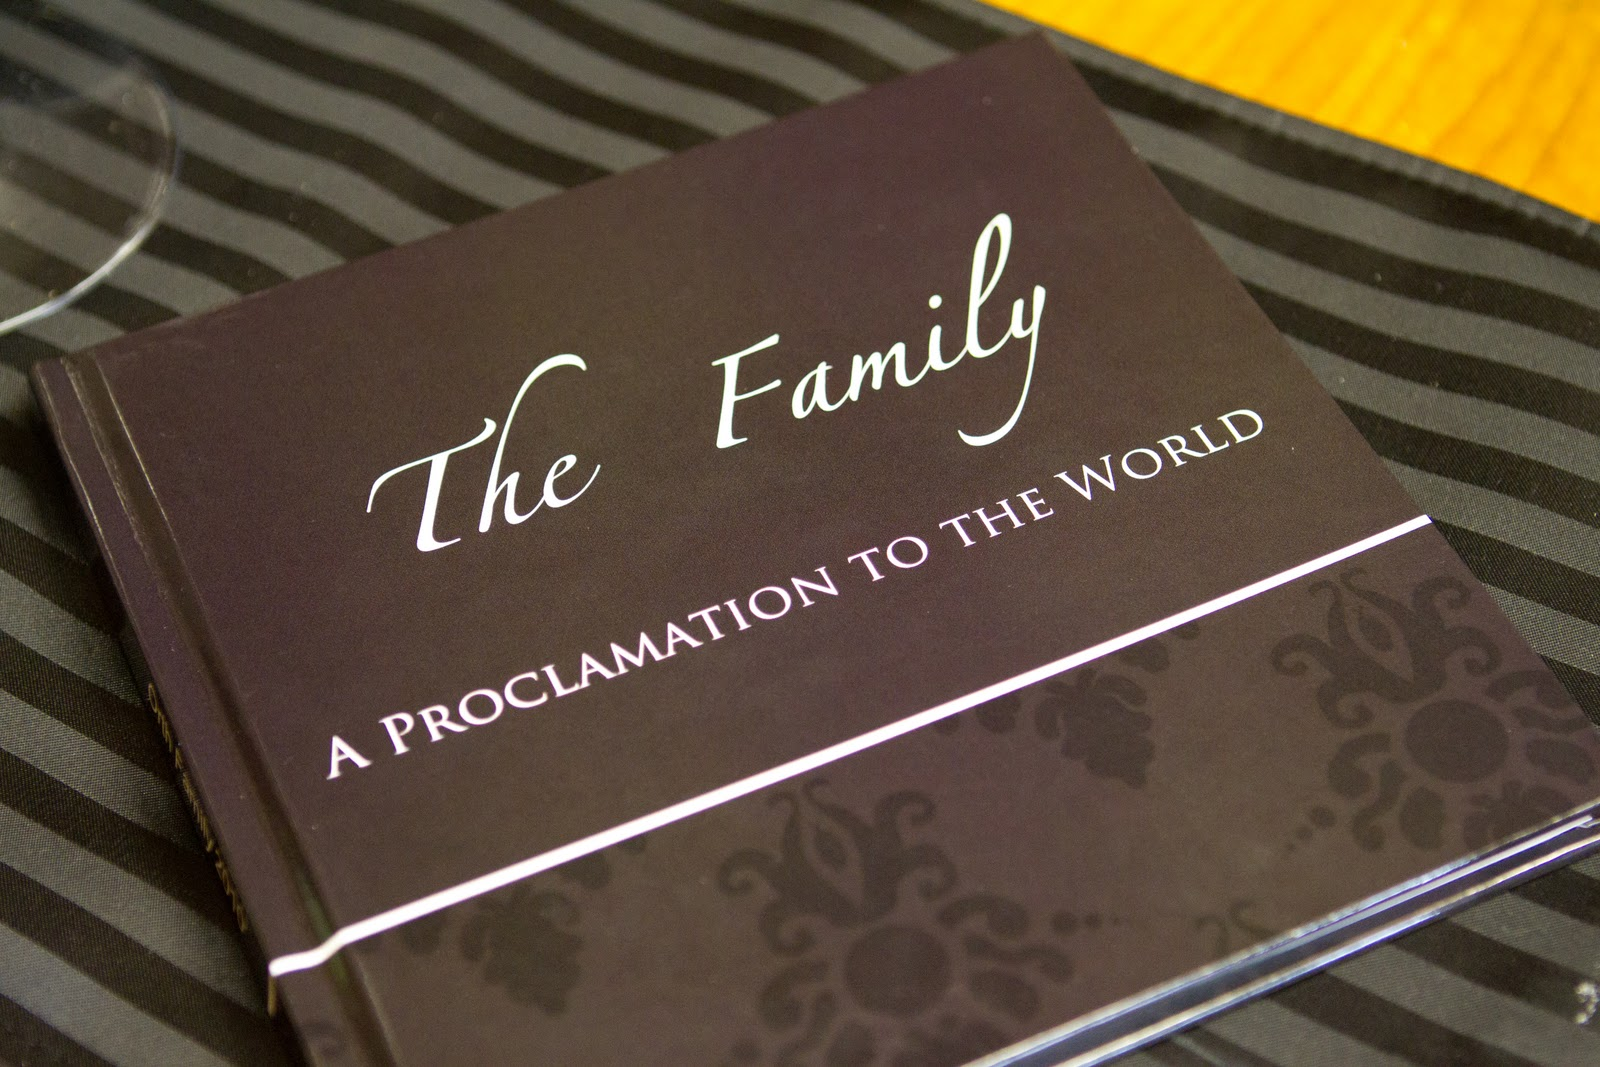 Creating a photo book is simple to do now with online tools and features the Proclamation in a very unique way.